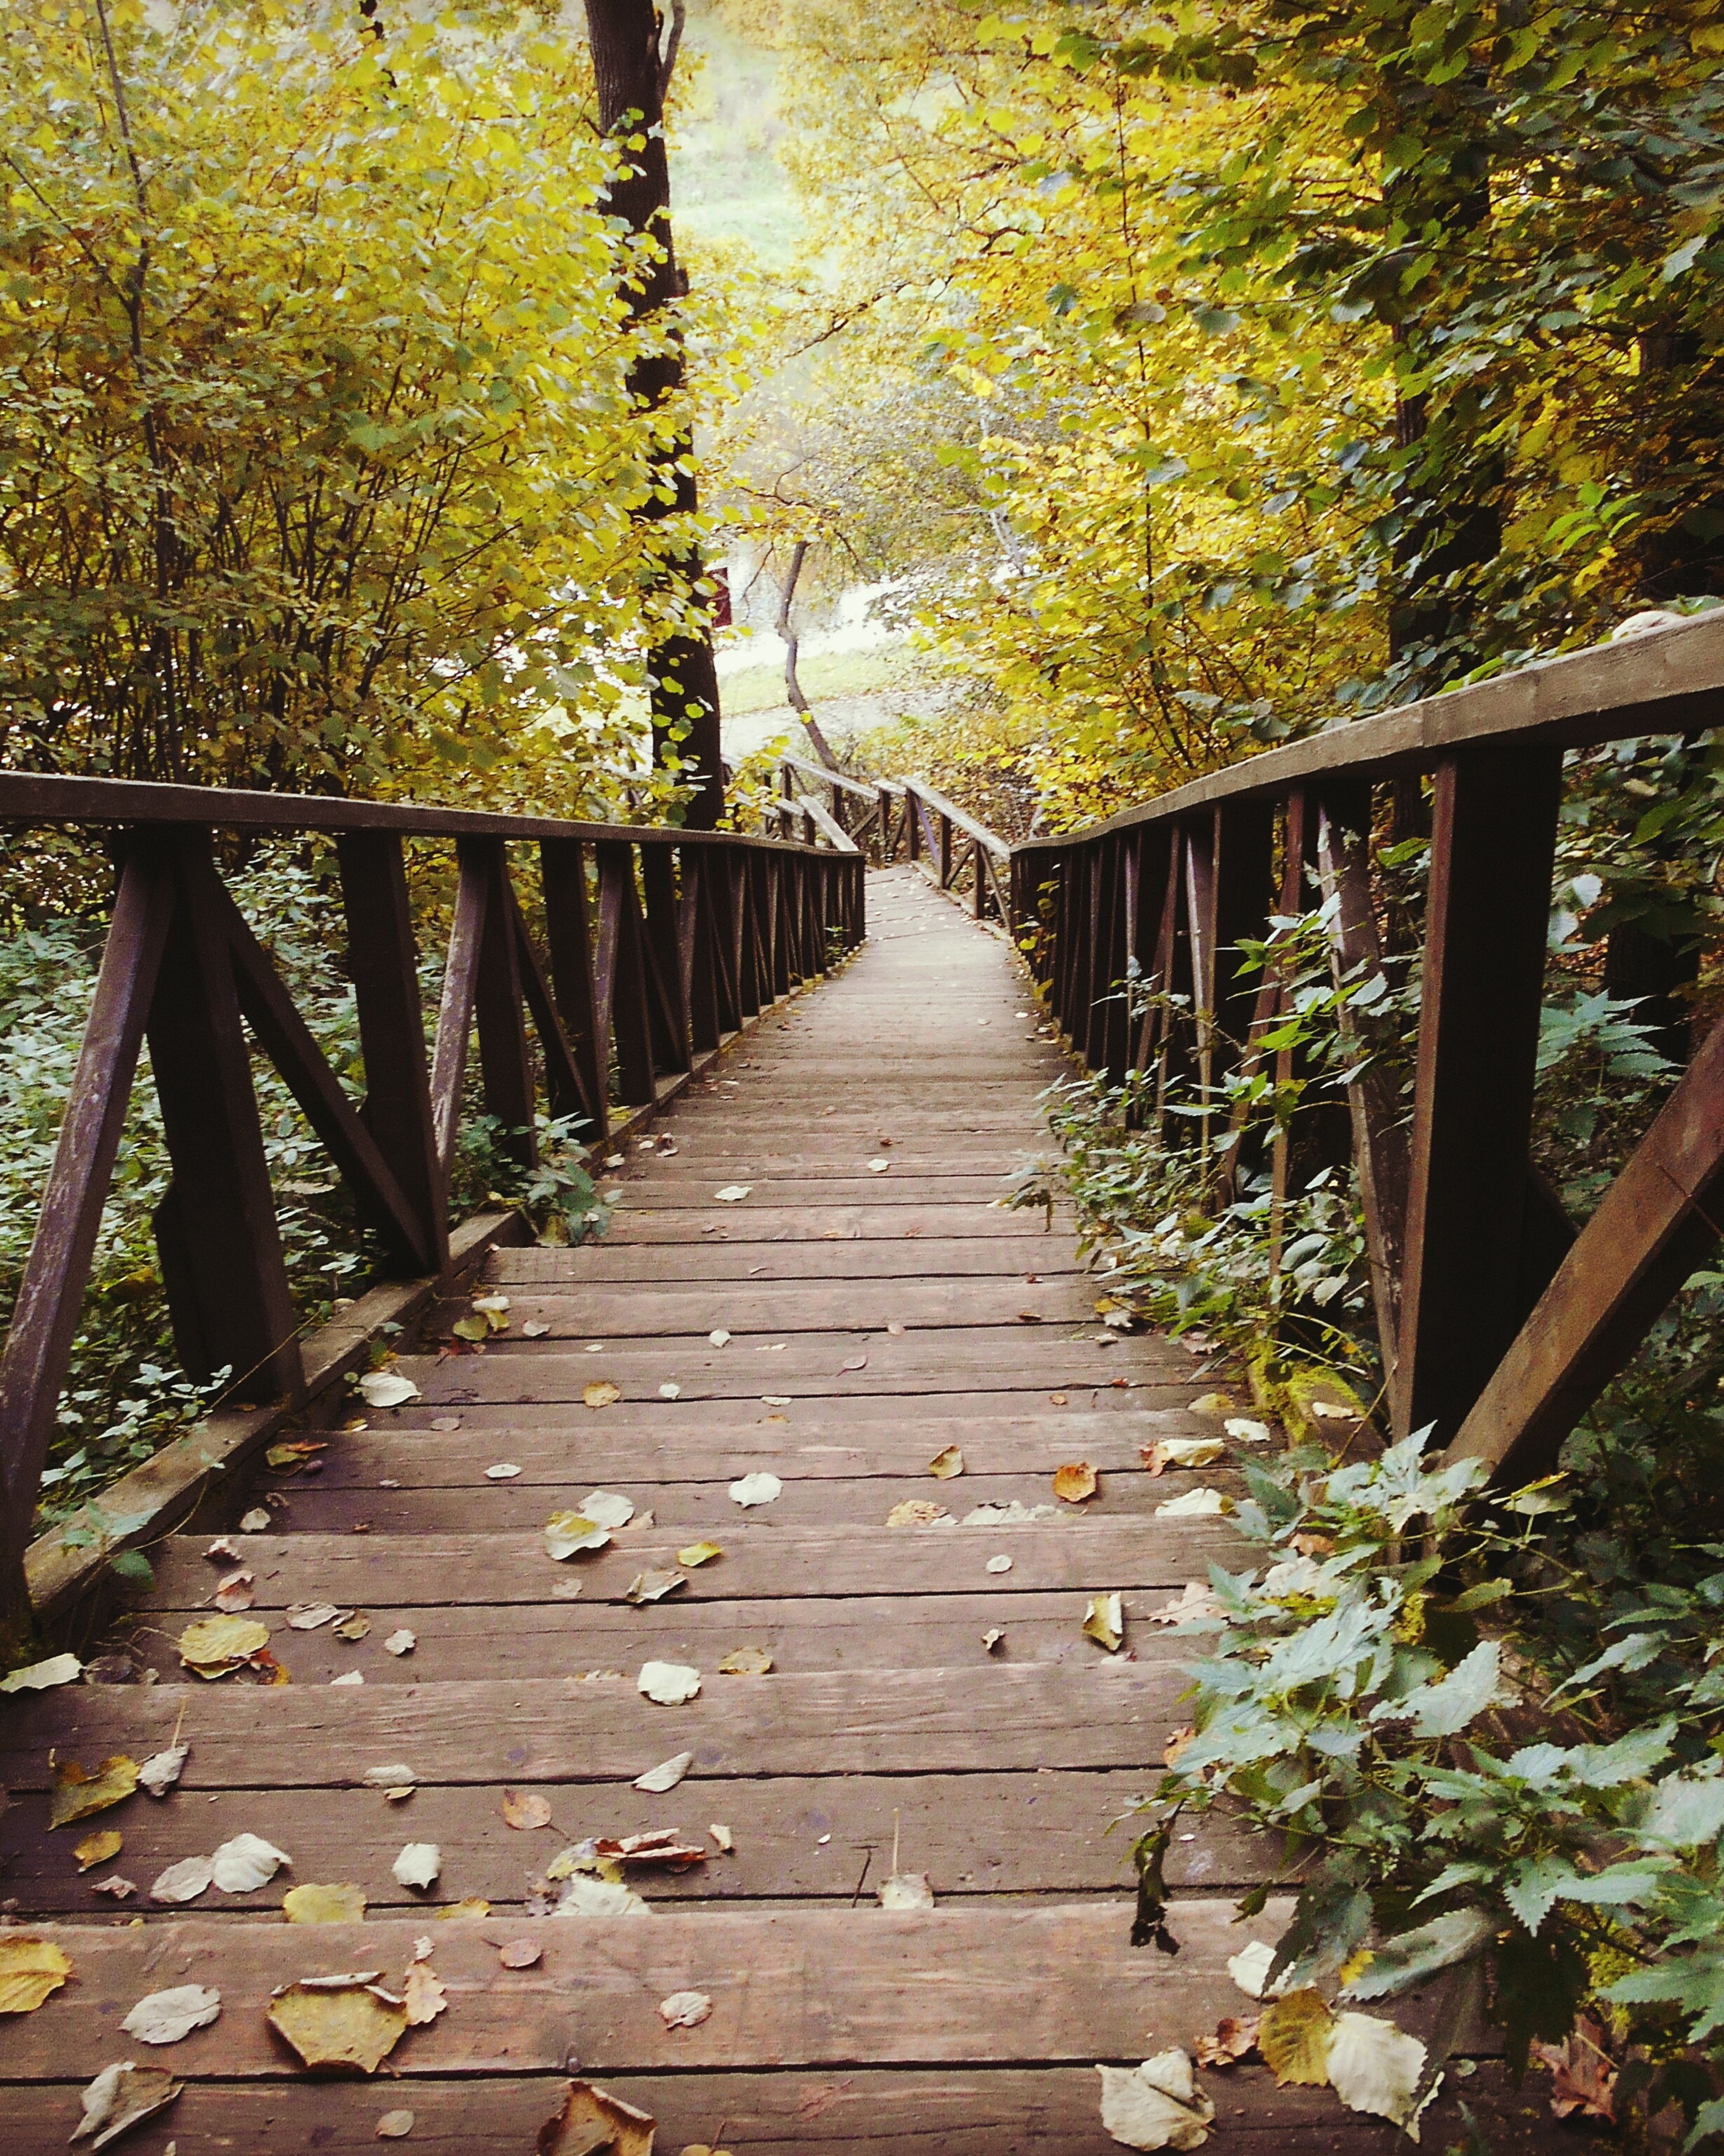 tree, growth, the way forward, leaf, tree trunk, nature, plant, diminishing perspective, tranquility, railing, day, footpath, tranquil scene, outdoors, green color, narrow, branch, scenics, no people, beauty in nature